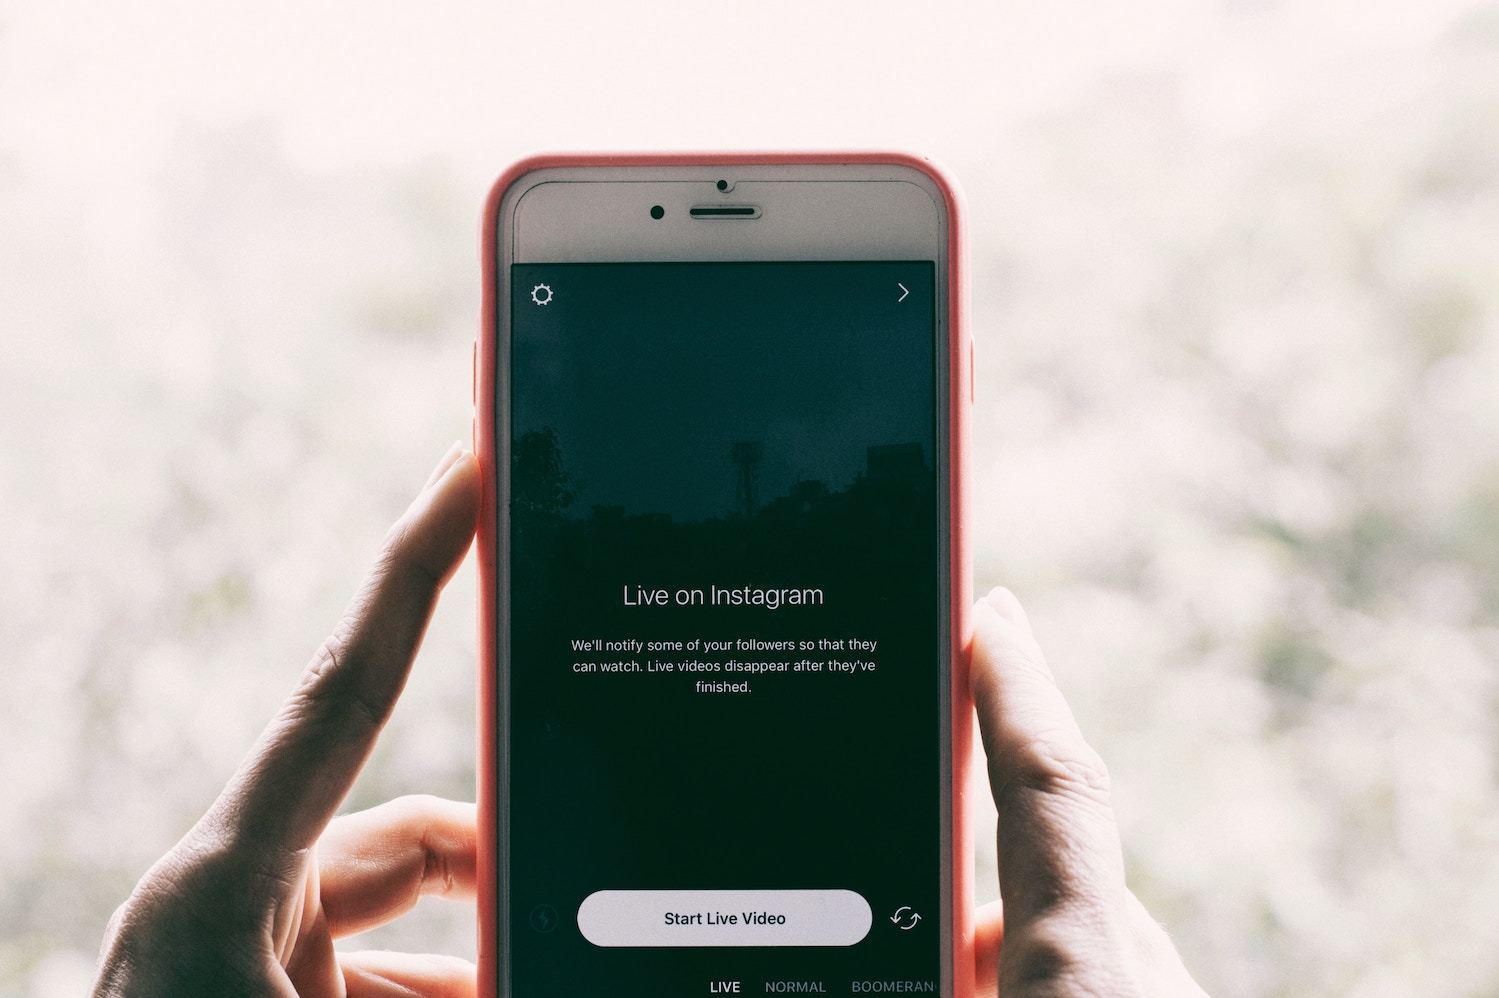 a smartphone with instagram live